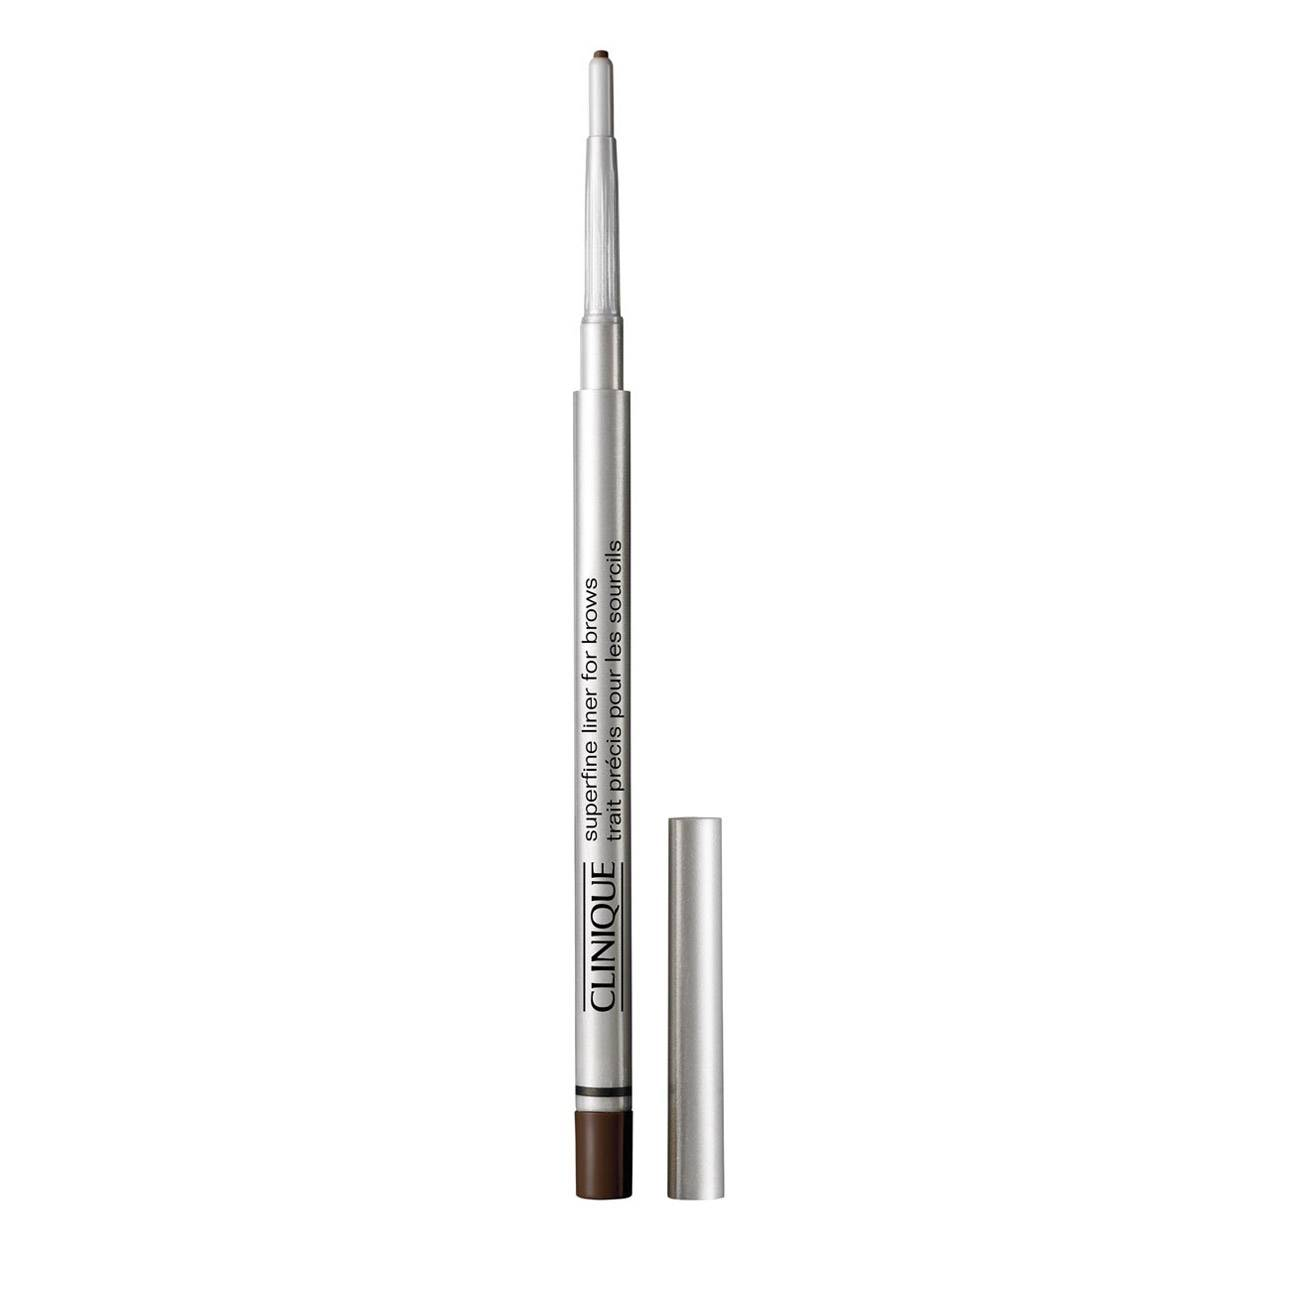 SUPERFINE LINER FOR BROWS 03 1gr imagine produs